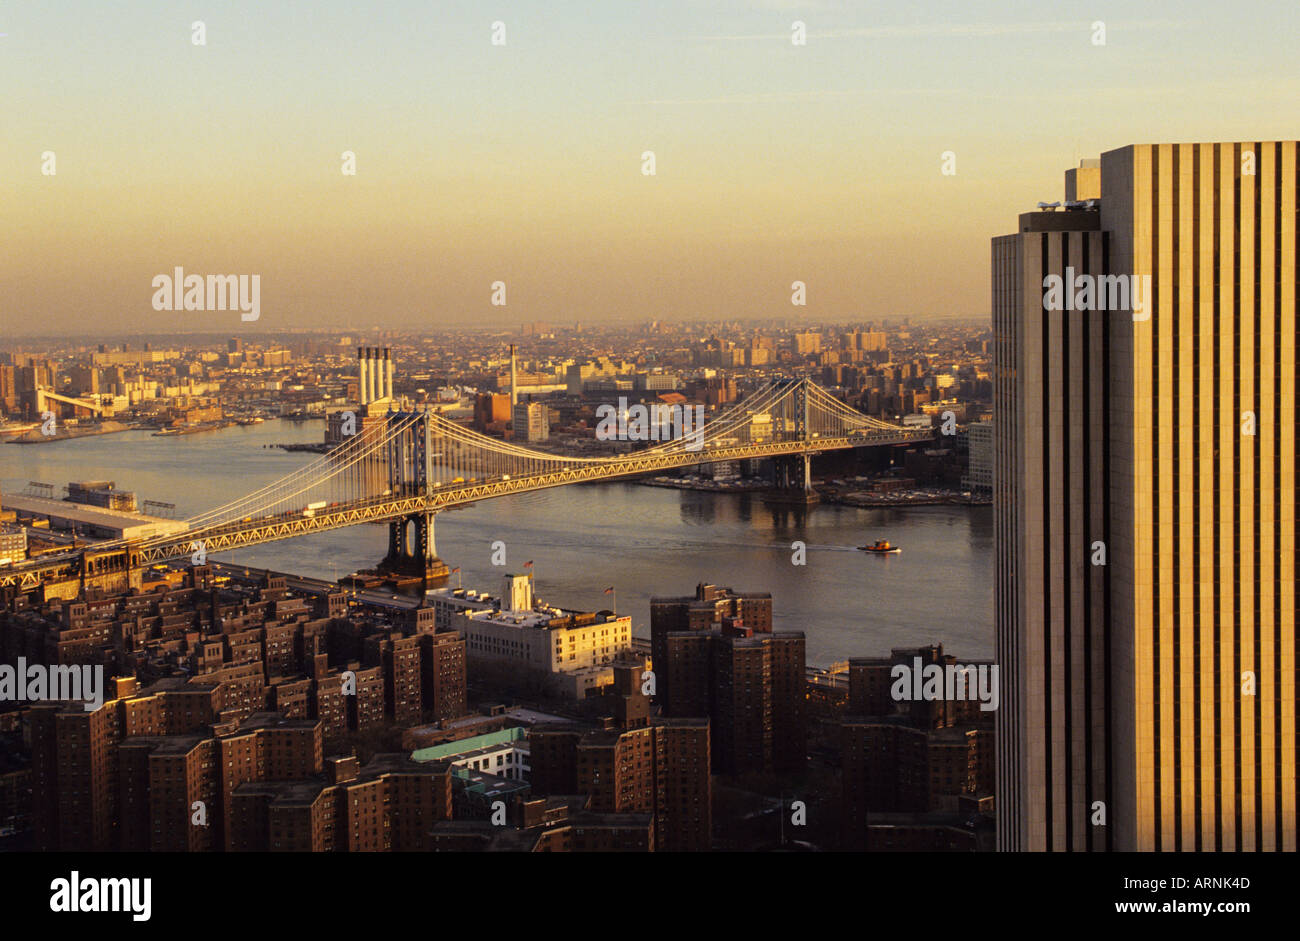 New York City NYC Manhattan Bridge and Queens at Dusk Evening Aerial USA - Stock Image